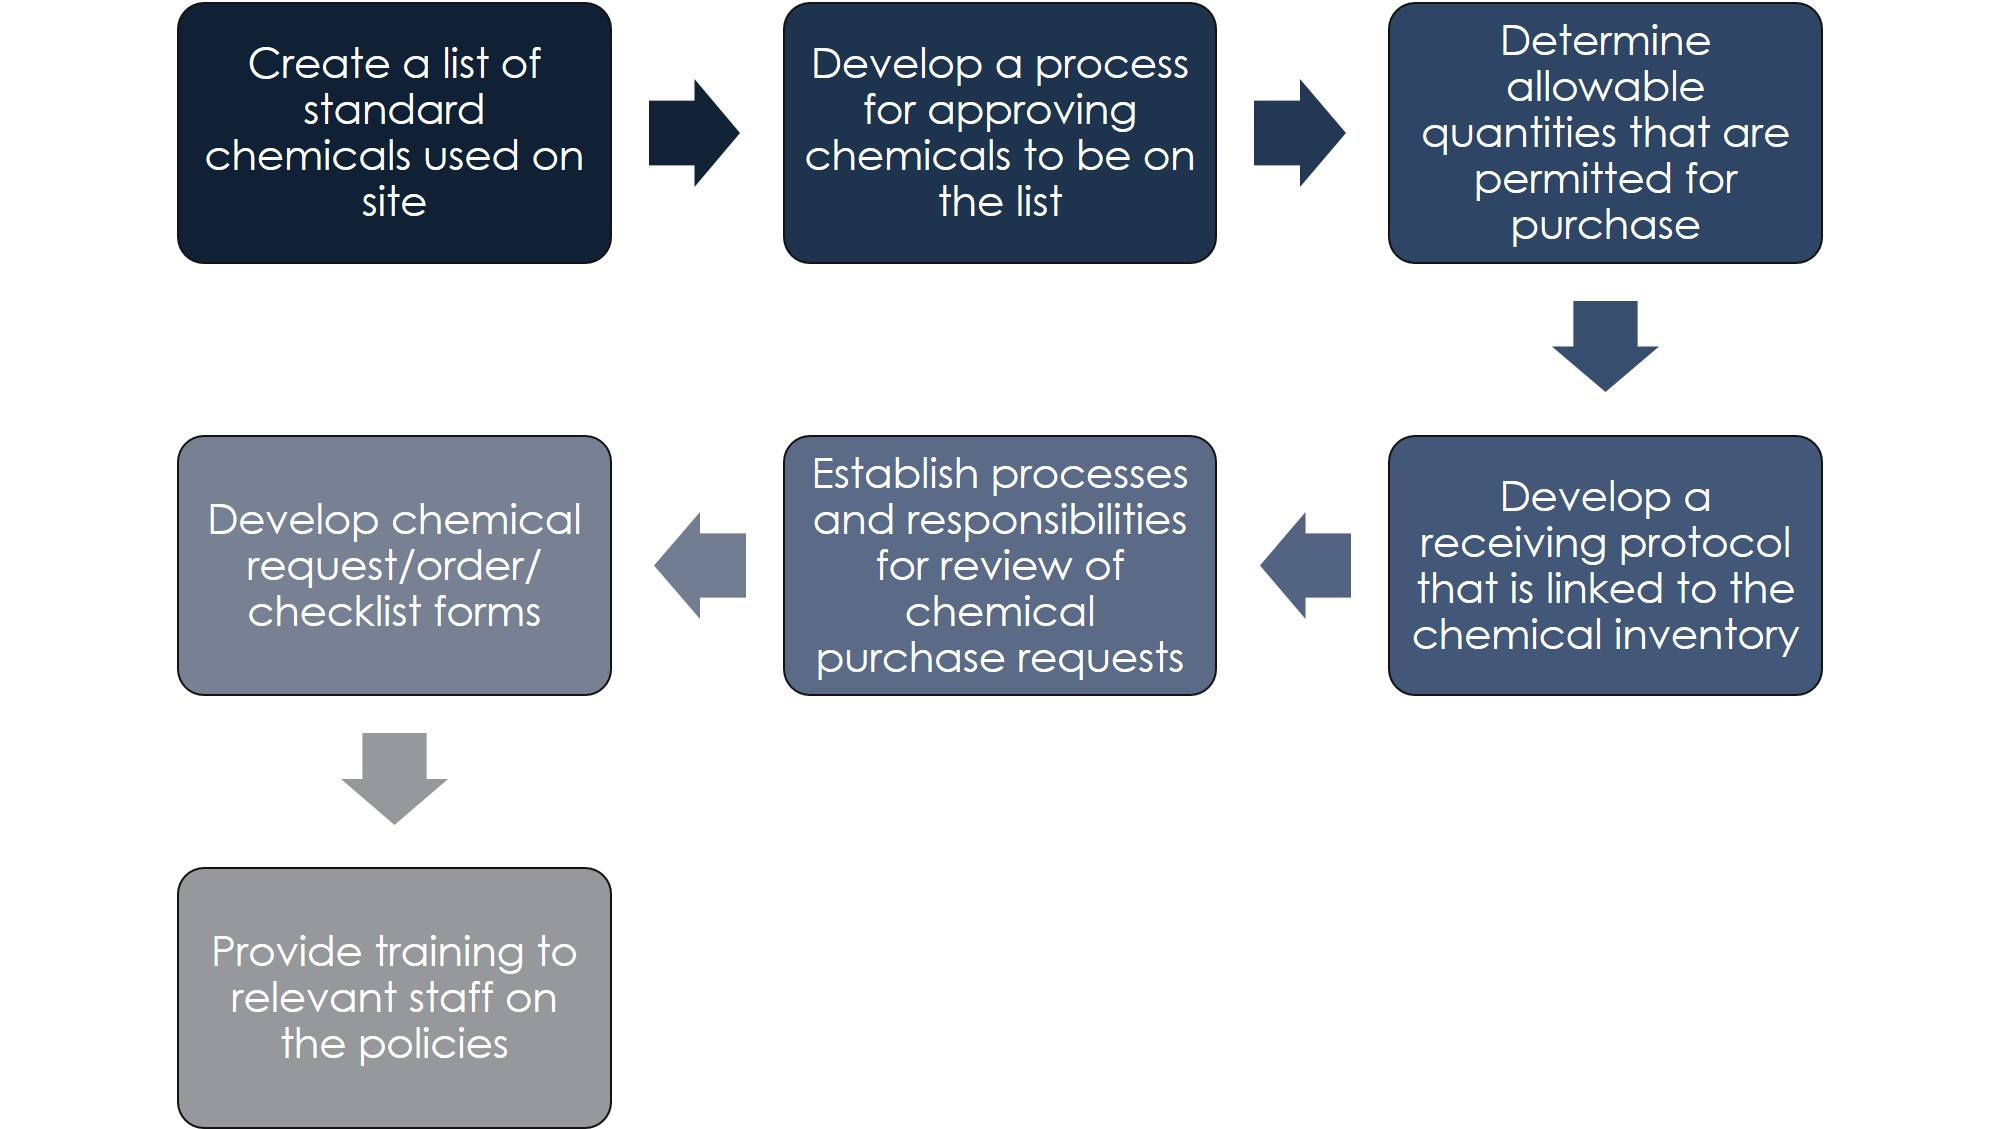 Chemical Purchasing Policy - Chemicals Management Guide